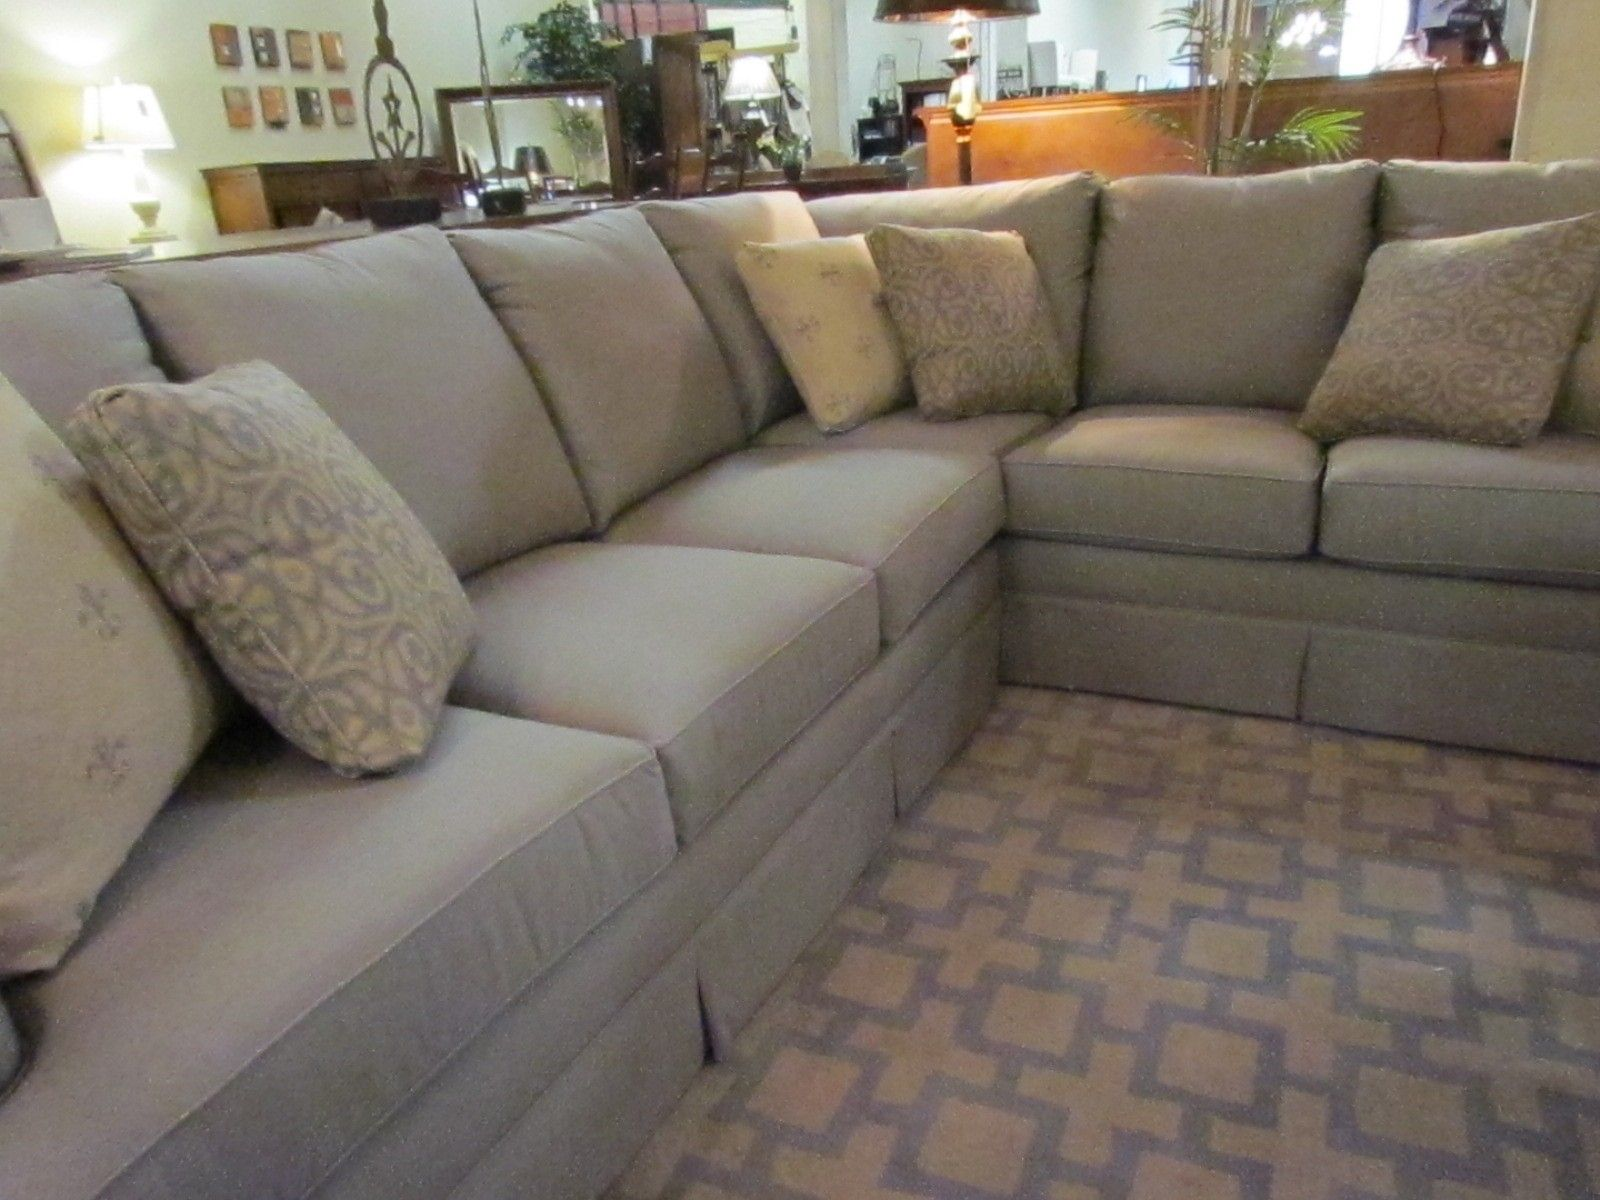 This Sectional Sofa Has Enough Room For The Entire Family